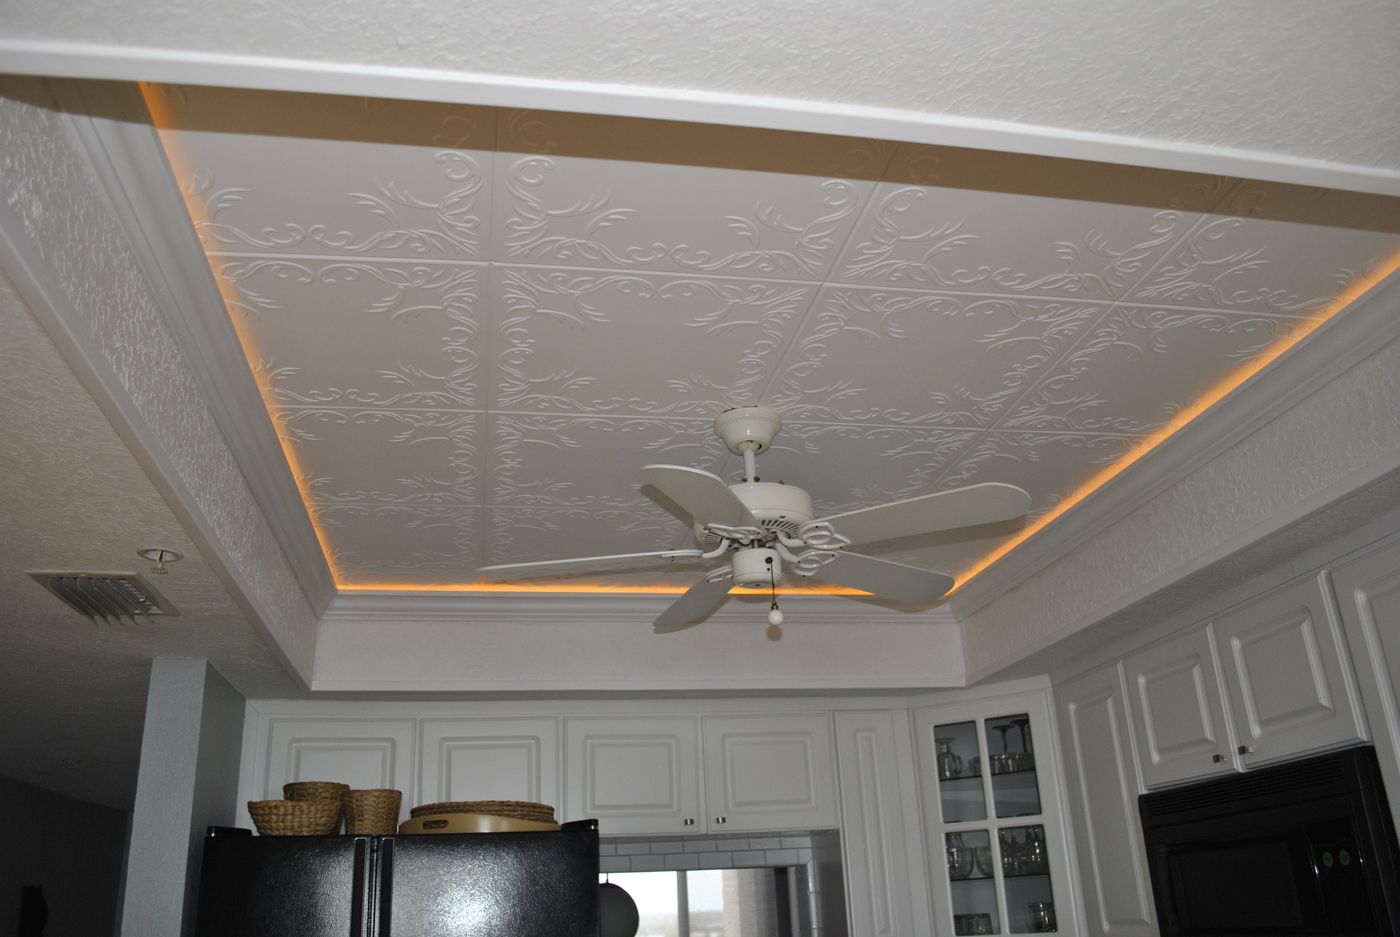 Fancy ceiling tiles pranksenders fancy ceiling tiles lader blog dailygadgetfo Choice Image